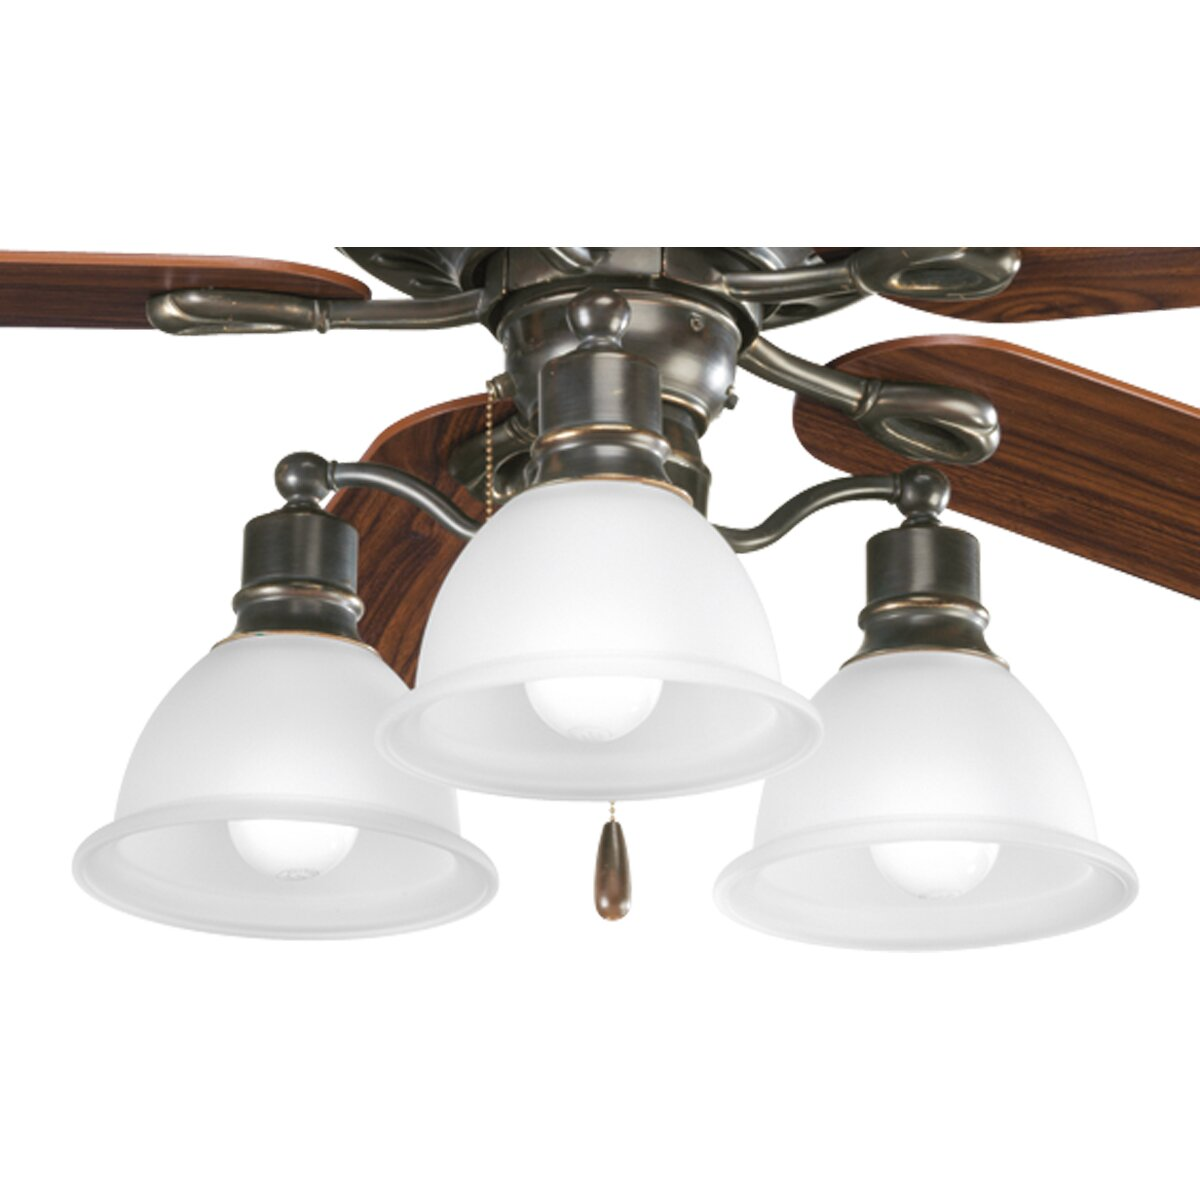 Ceiling Light Fan: Progress Lighting Madison 3 Light Branched Ceiling Fan